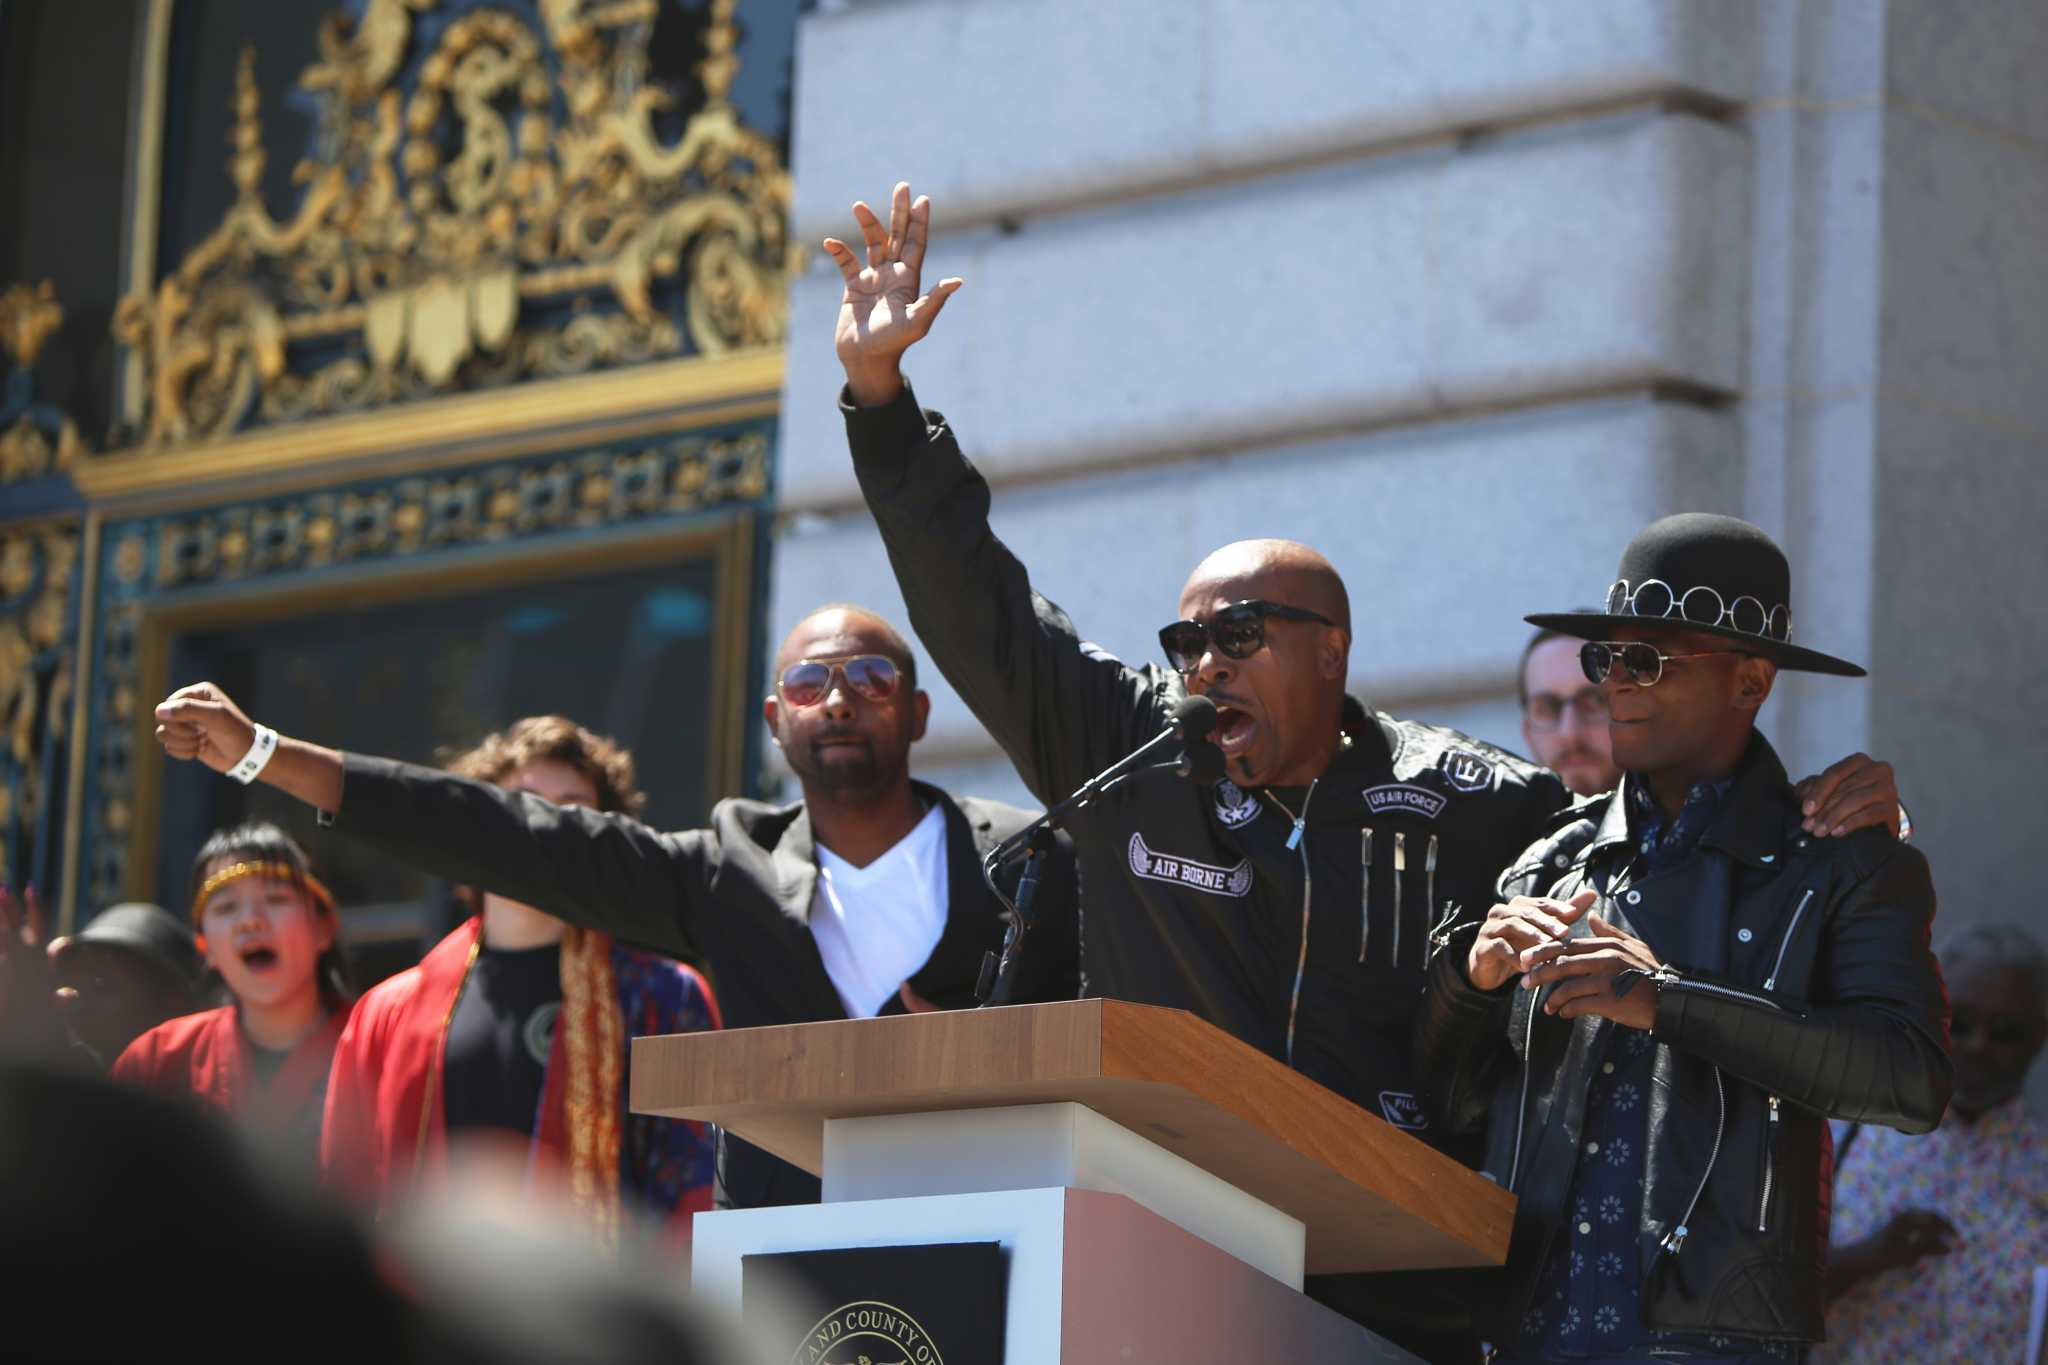 MC Hammer performs during a peaceful Unite Against Hate Rally hosted by city officials at San Francisco's City Hall on Friday, August 25, 2017. (Mira Laing/Golden Gate Xpress)